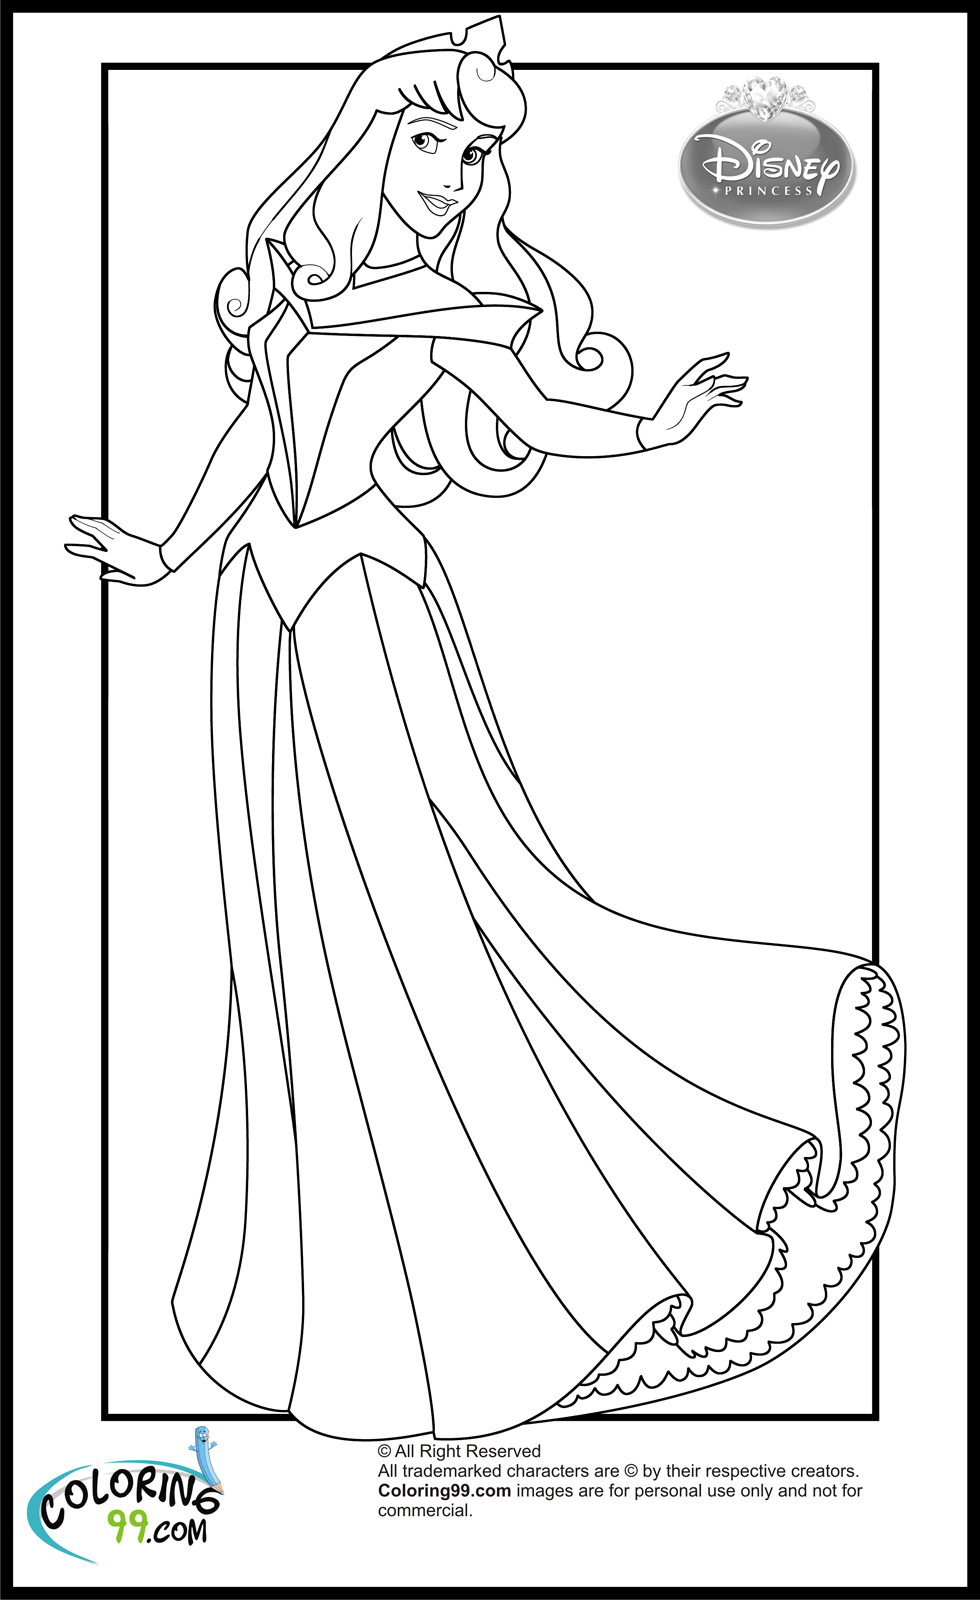 ariel princess colouring pages ariel the little mermaid coloring pages for girls to print pages ariel colouring princess